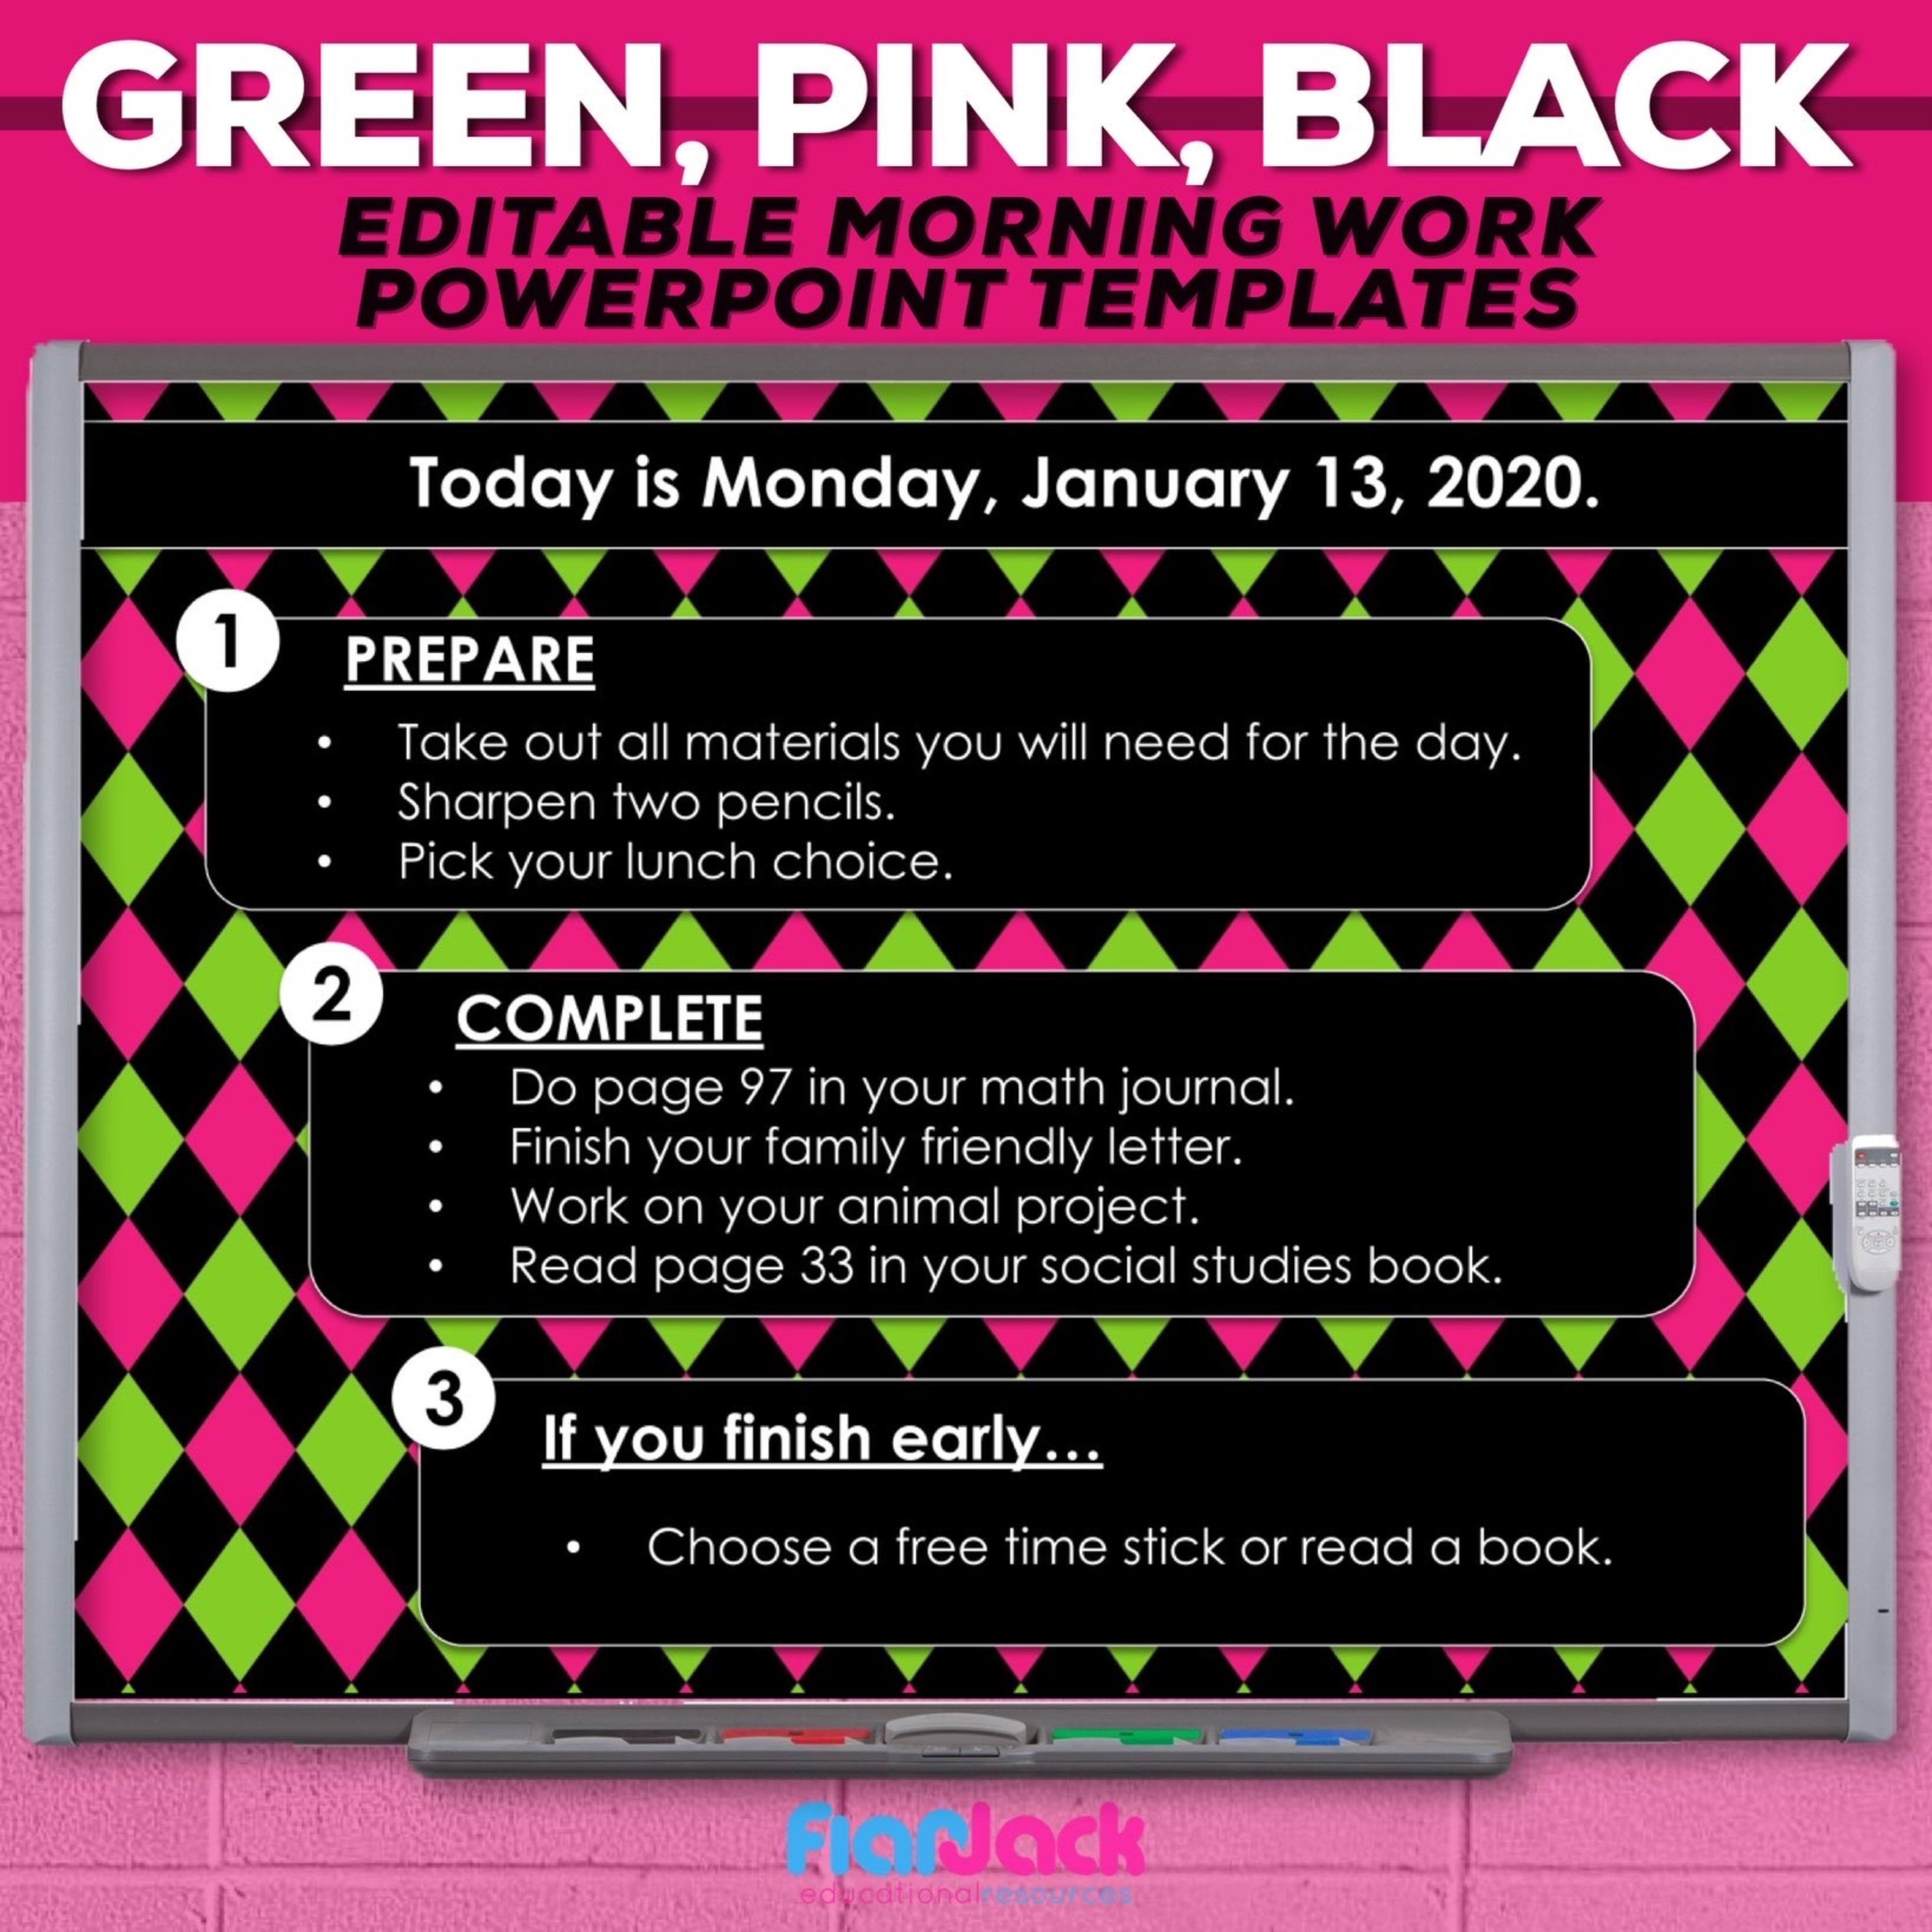 Editable PowerPoint Templates | Green Pink Black